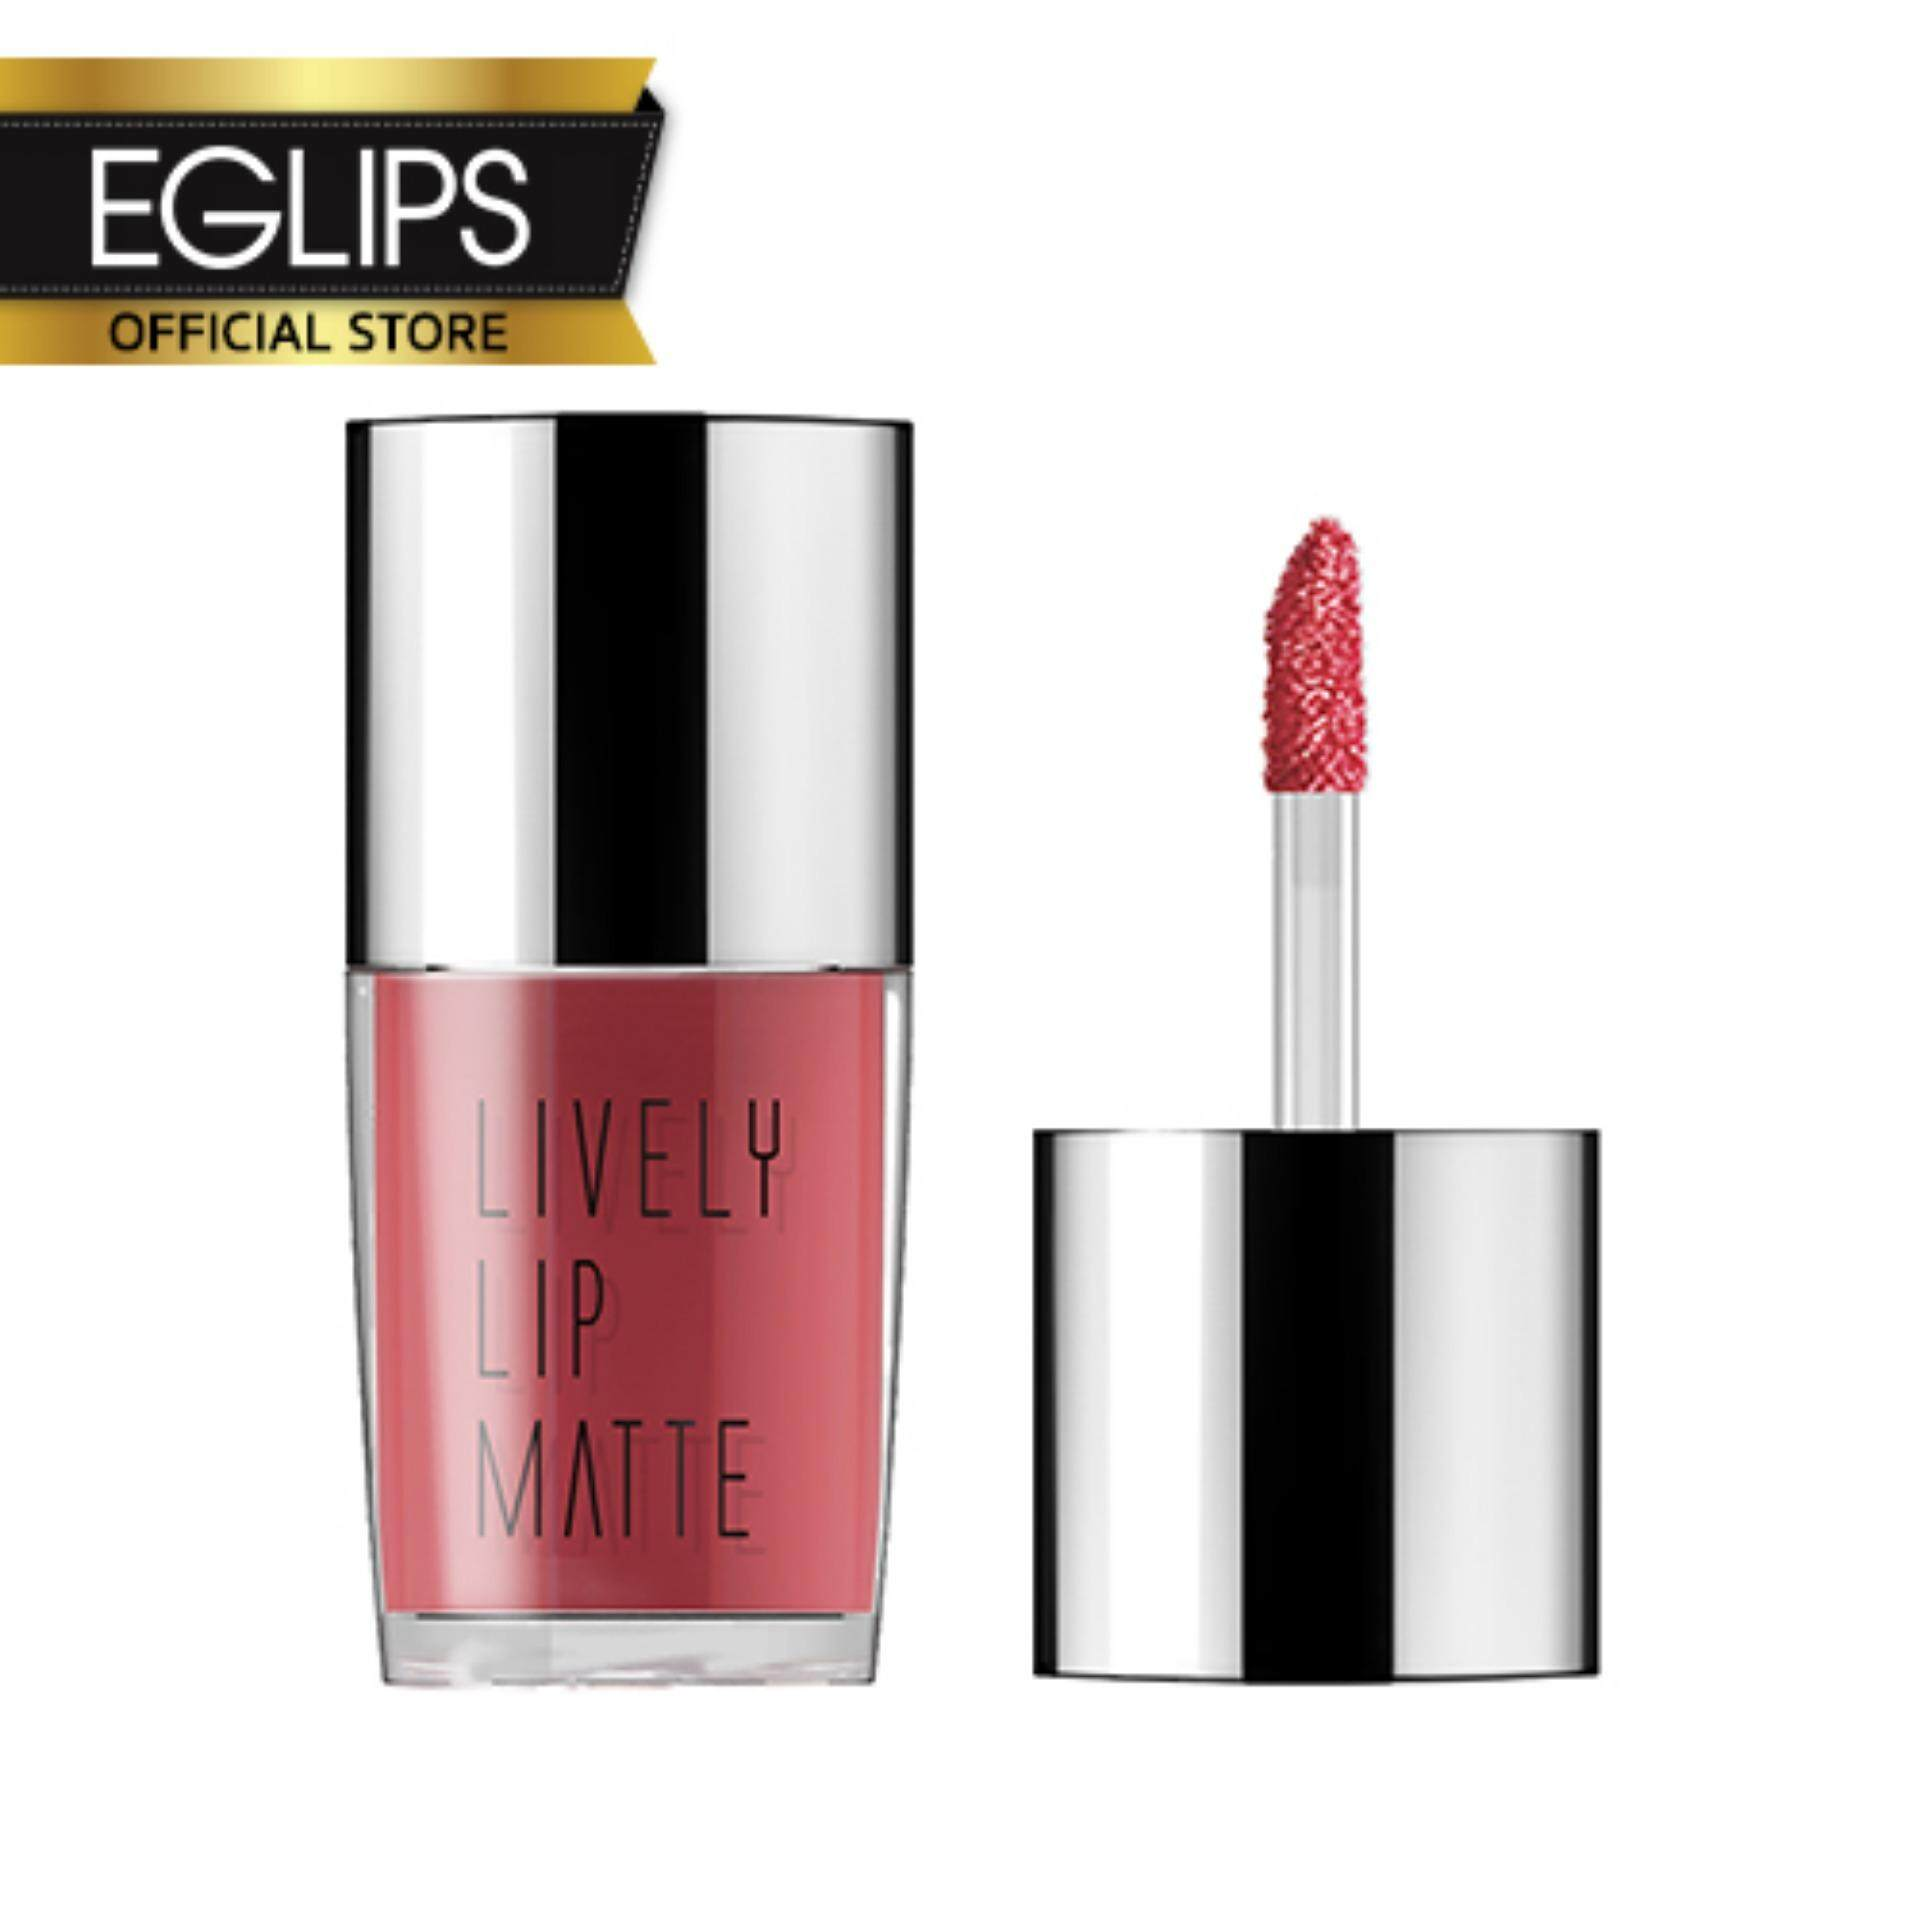 Eglips Lively Lip Matte - LM006 Antique Pinky Matte